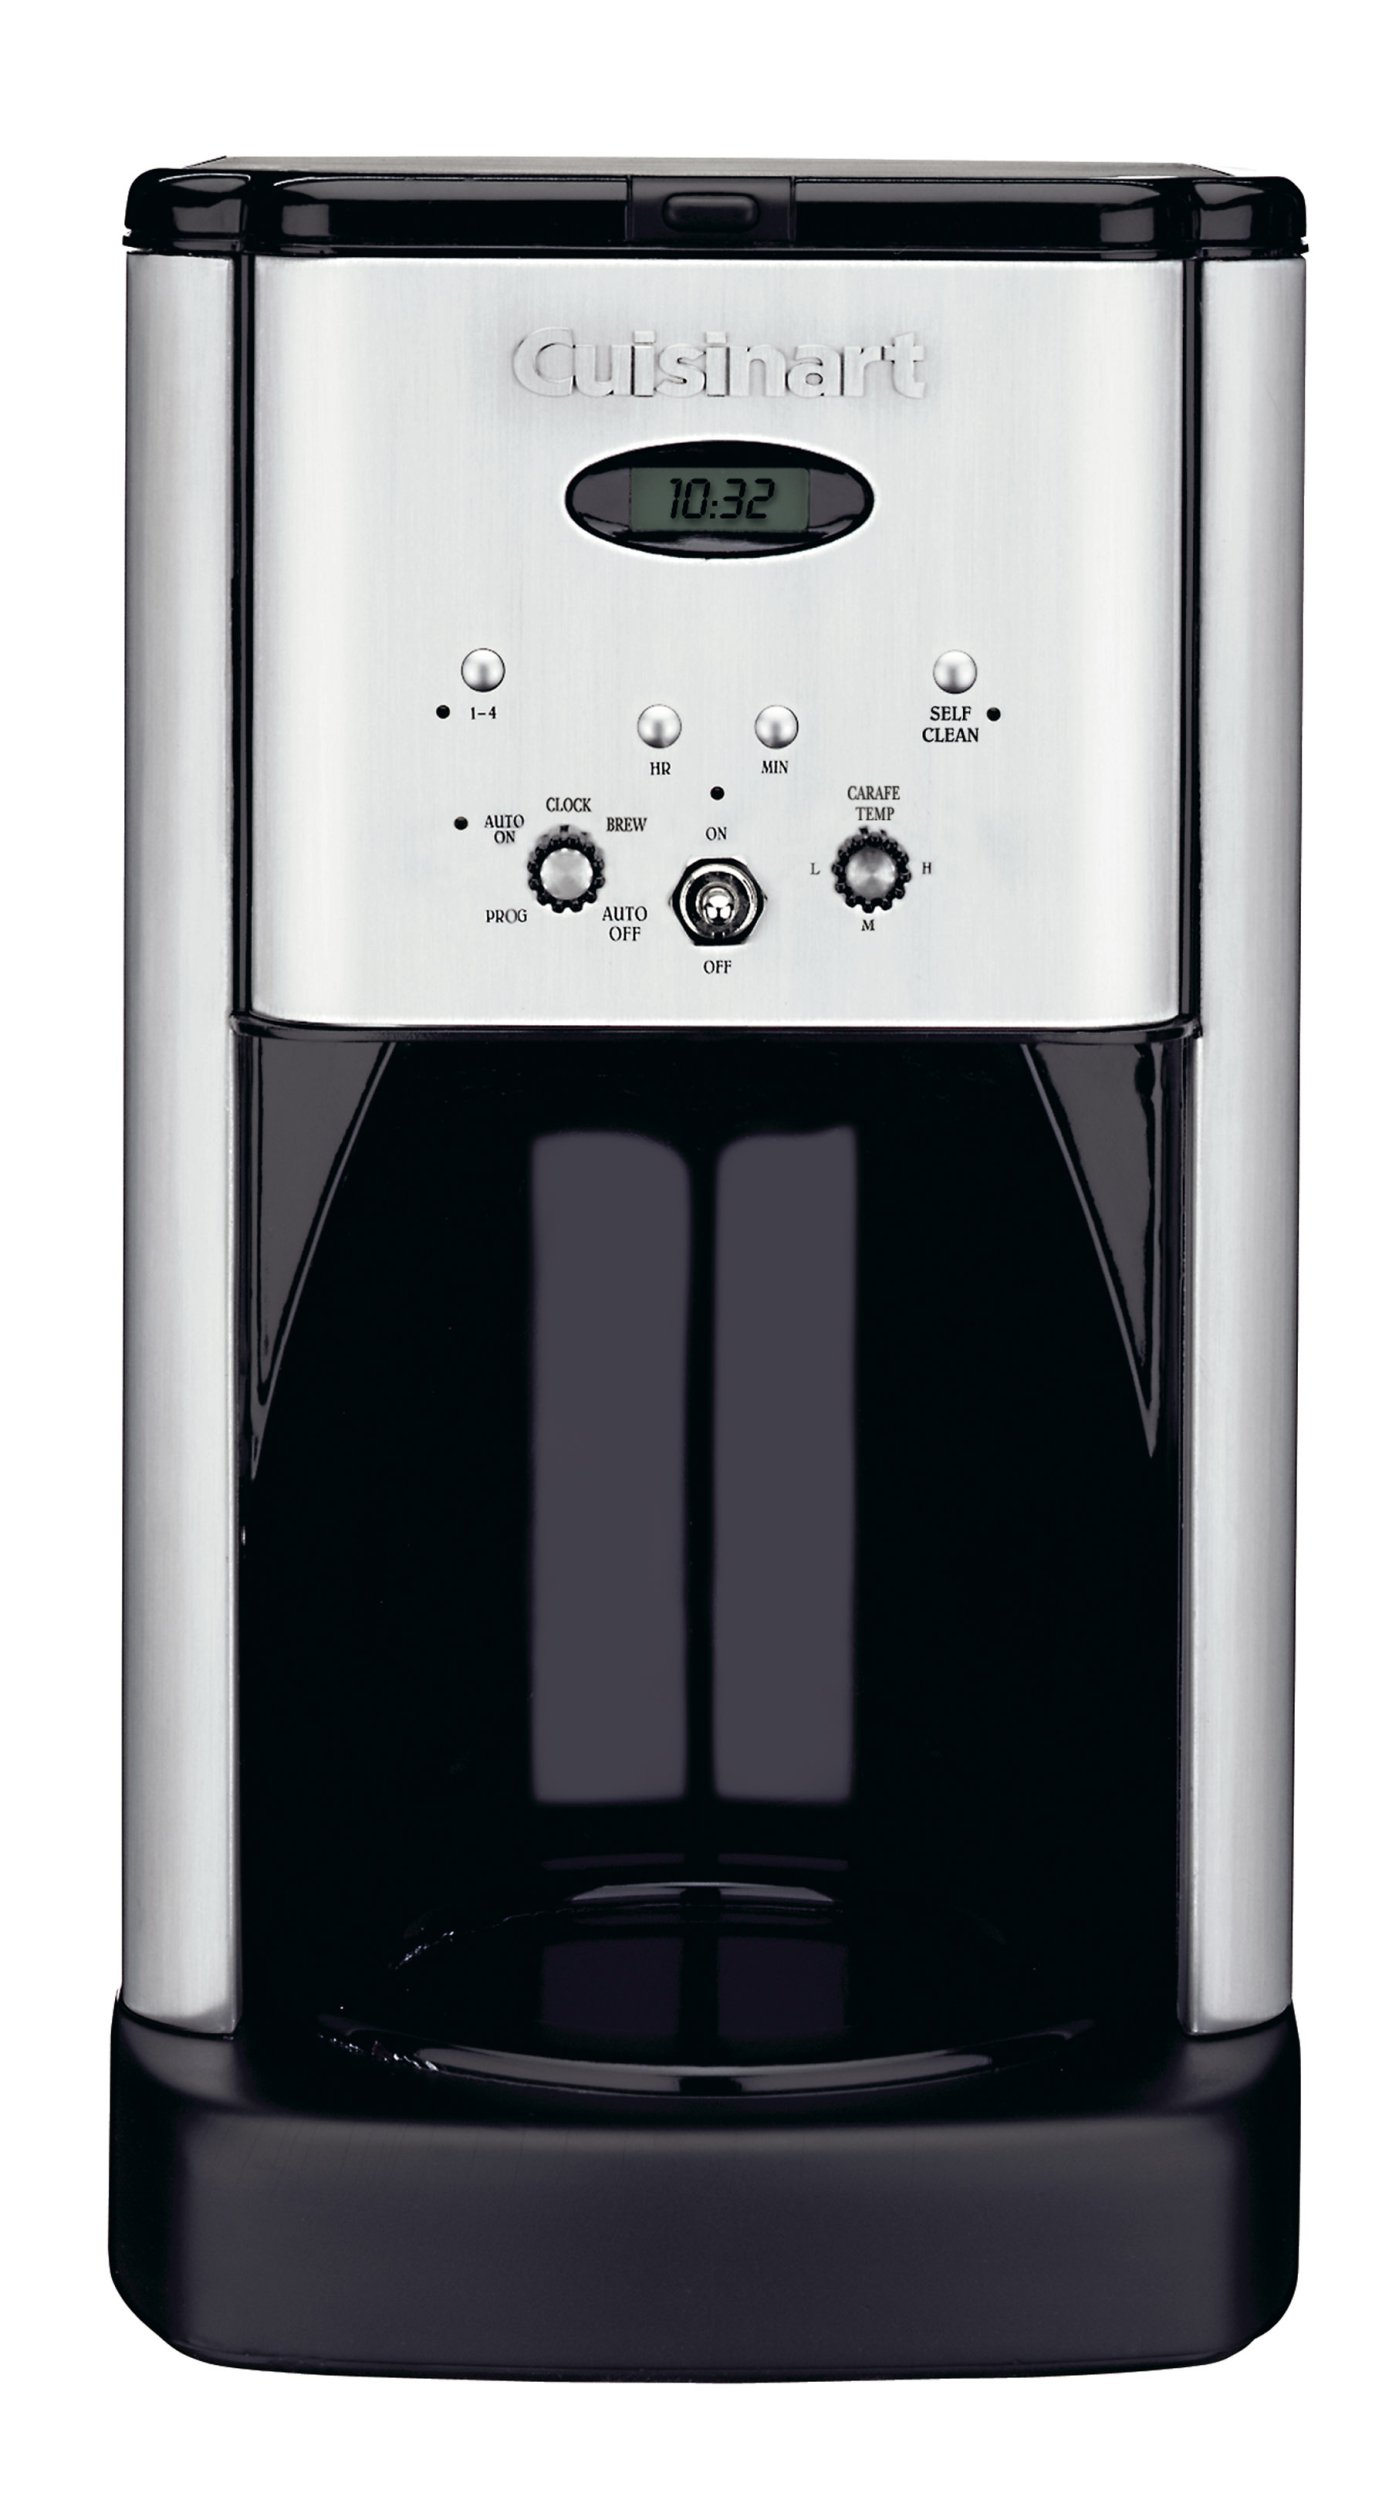 Cuisinart DCC-1200 Brew Central 12 Cup Programmable Coffeemaker, Black/Silver by Cuisinart (Image #8)